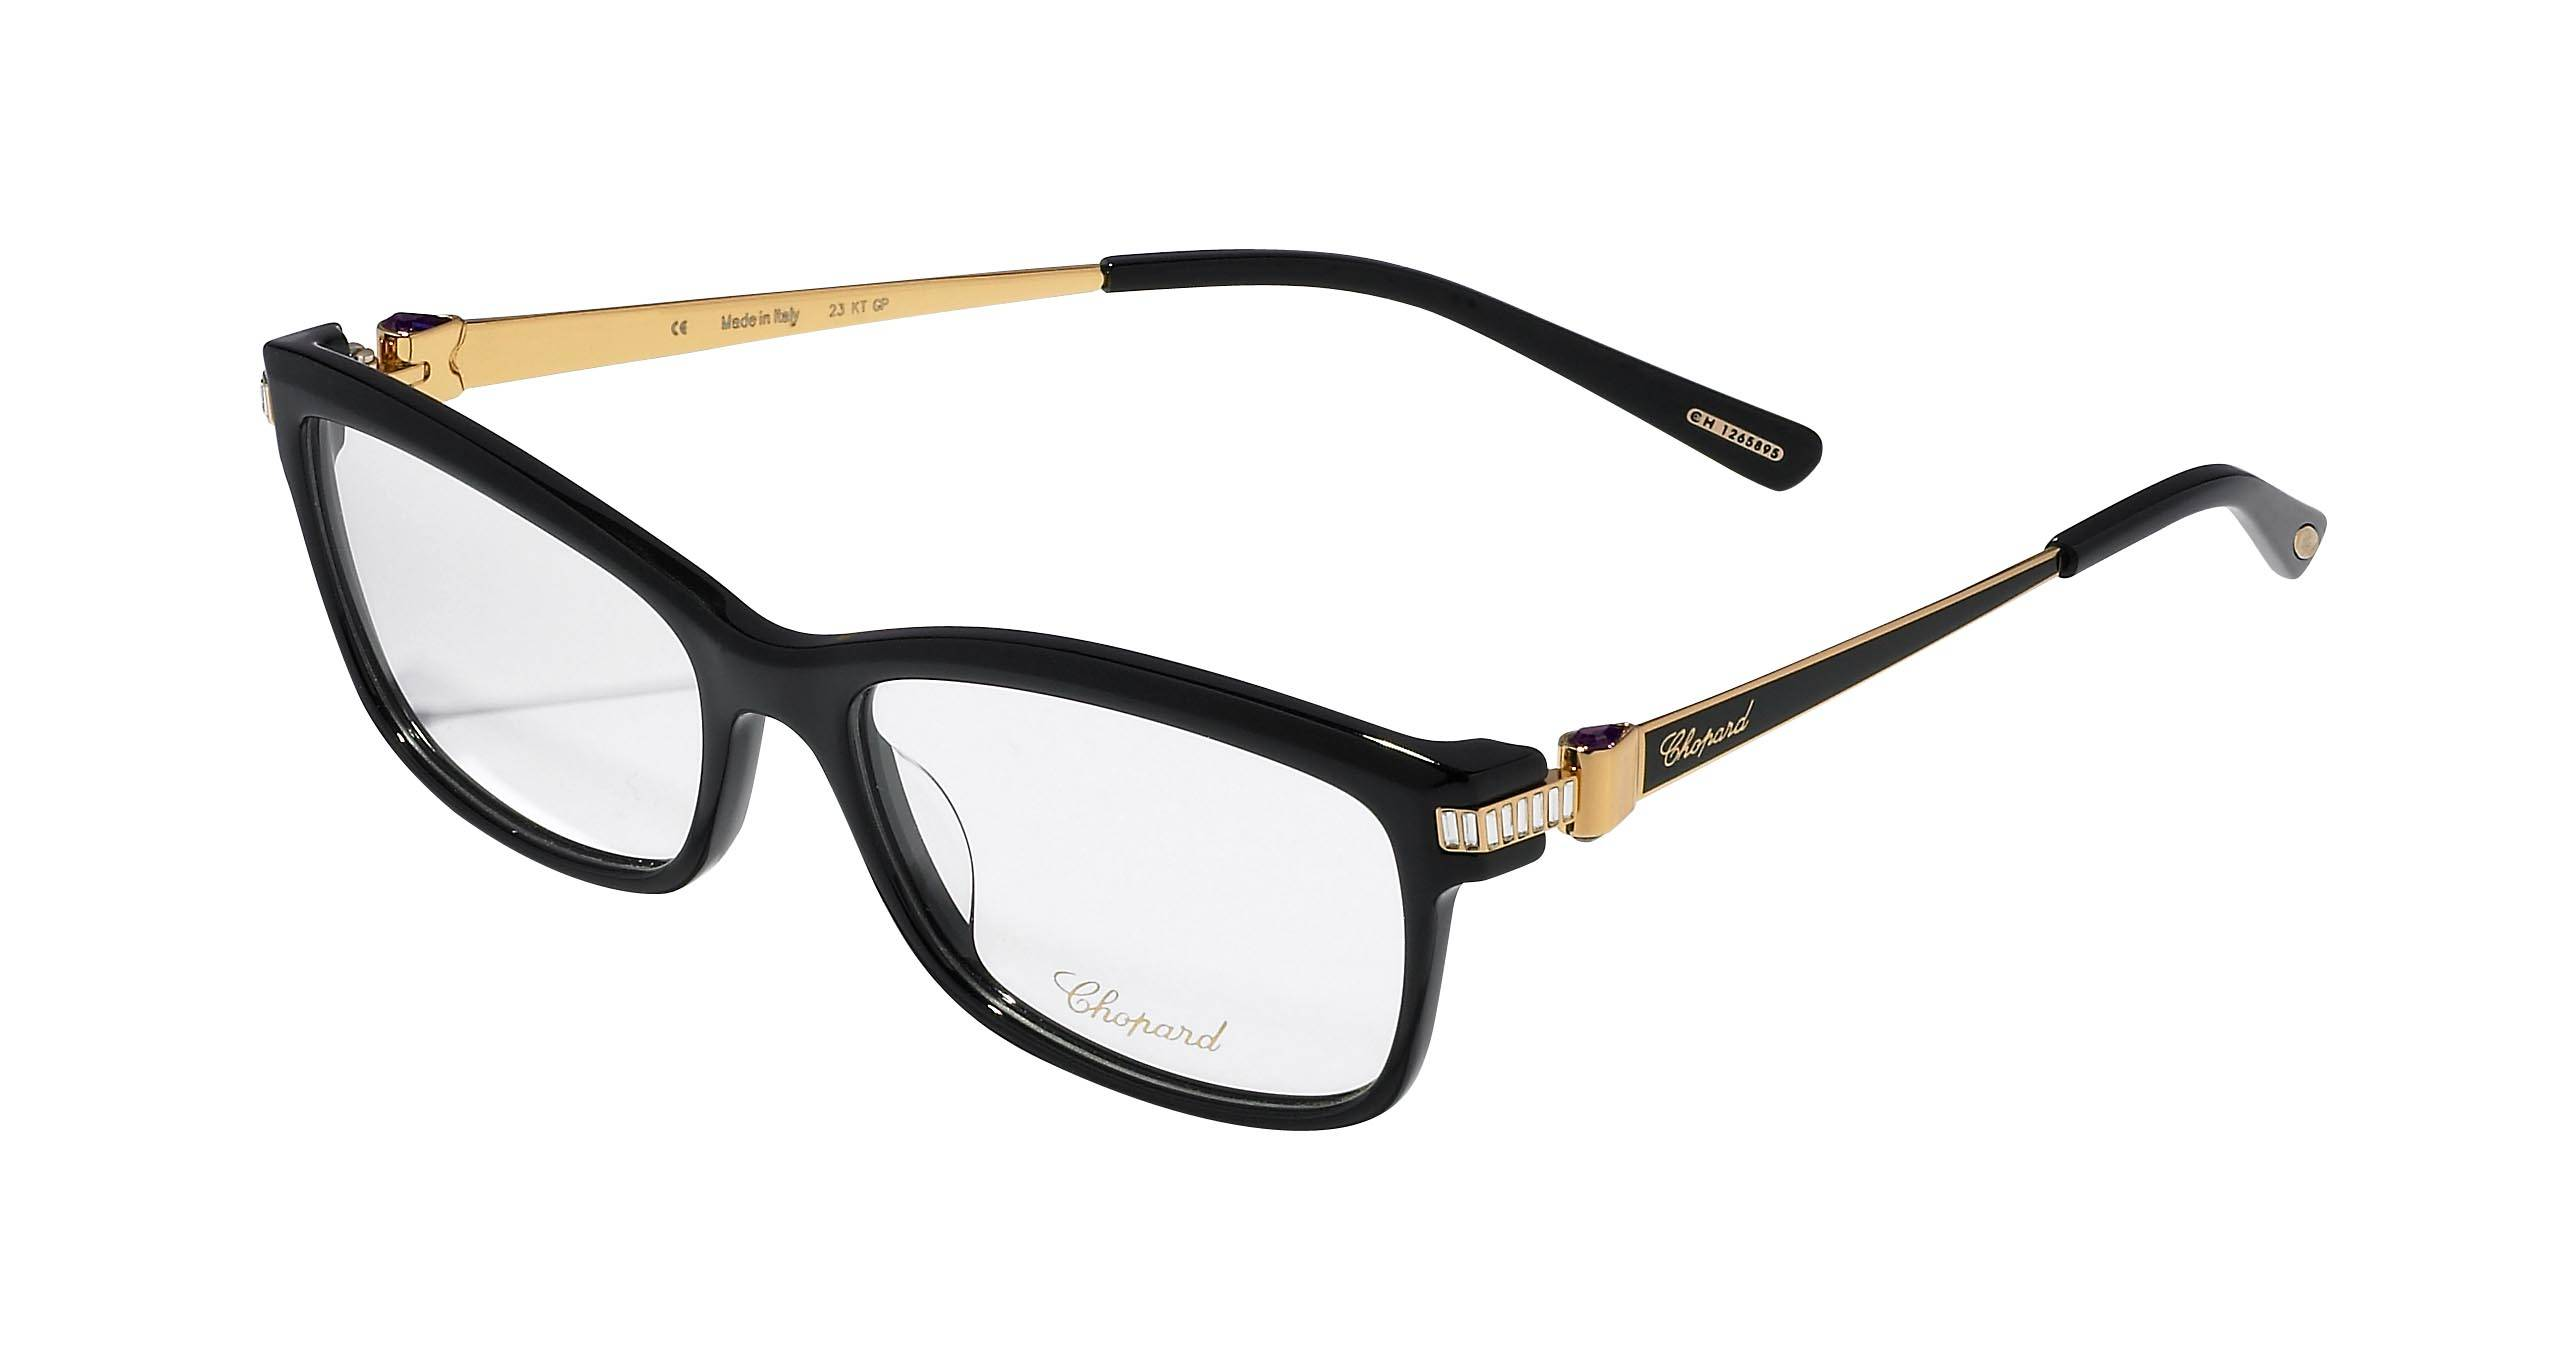 8a9a2813c60 Chopard Glasses in Clitheroe